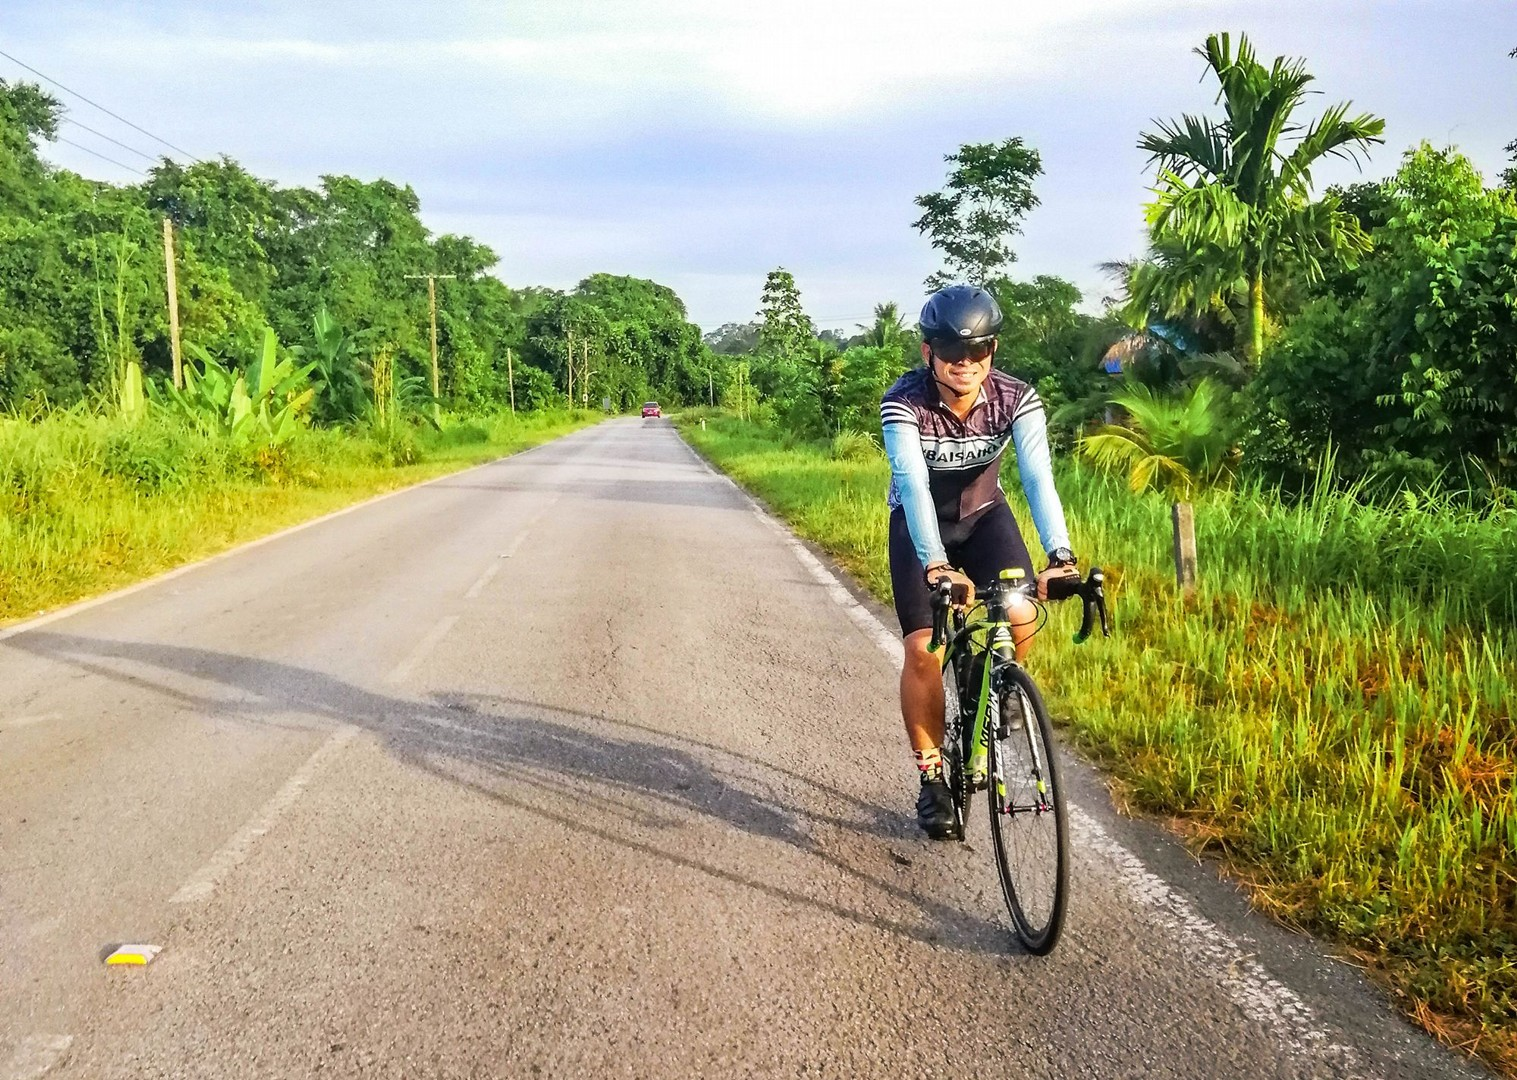 cycling-borneo-road-holidays-saddle-skedaddle-sarawak-to-sabah.jpg - Borneo - Sarawak to Sabah - Guided Road Cycling Holiday - Road Cycling